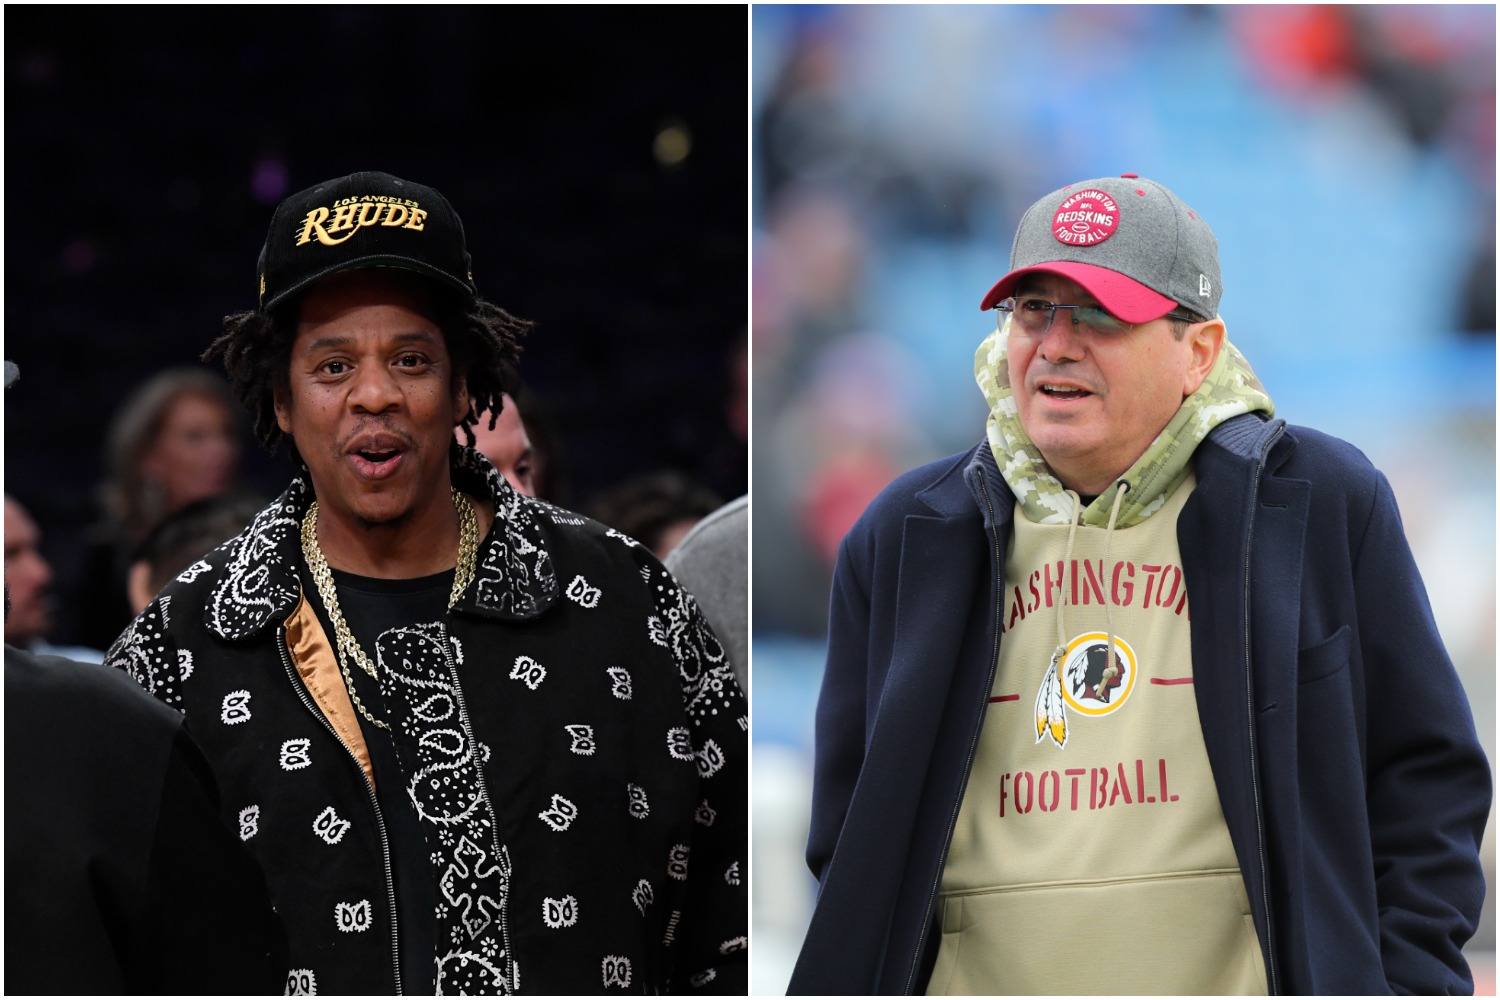 Dan Snyder Could Soon Cease Partial Control of the Washington Football Team to Legendary Rapper Jay-Z